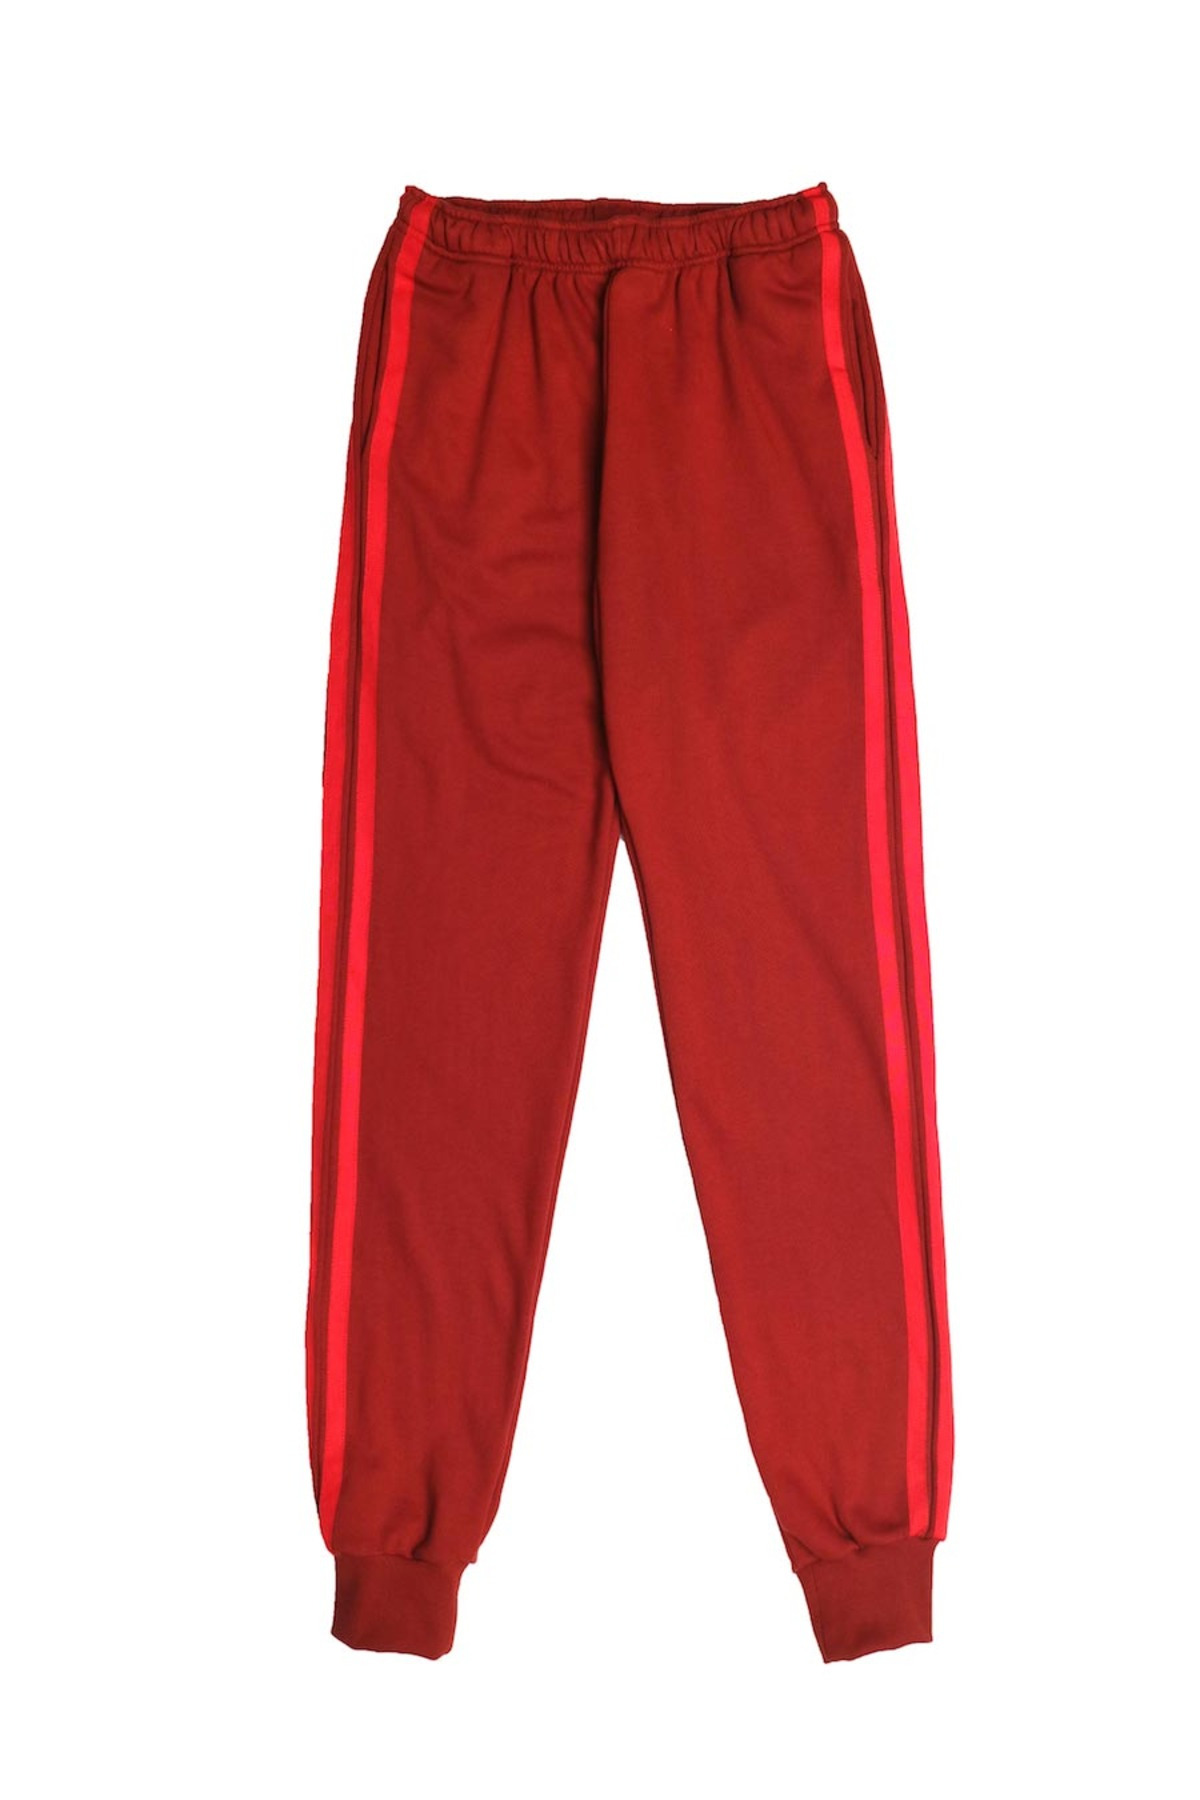 BURGUNDY RED JOG PANTS